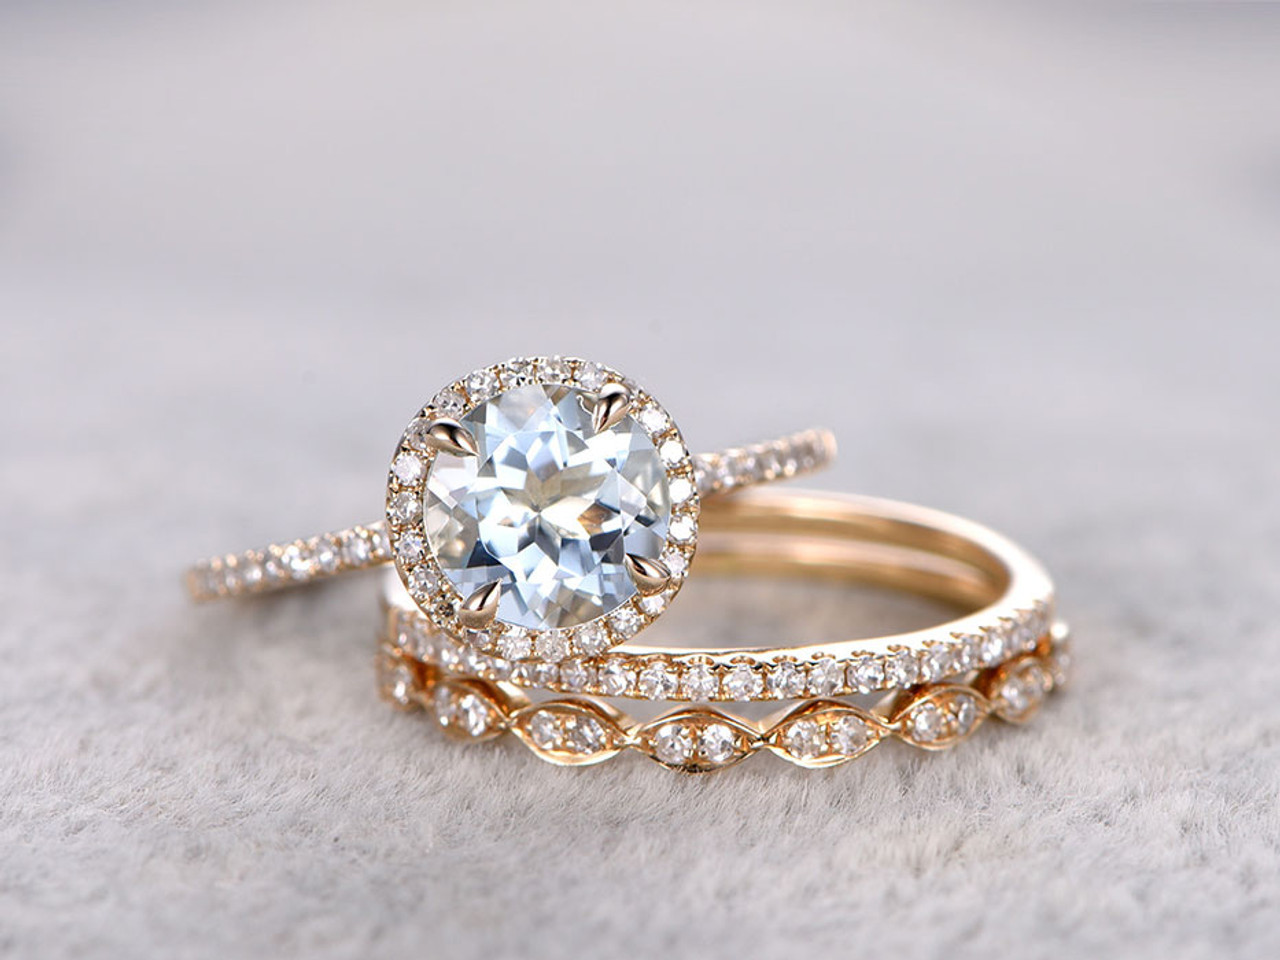 s band choice rings in attachment finish thin phenomenal wedding gold k sets of engagement ring